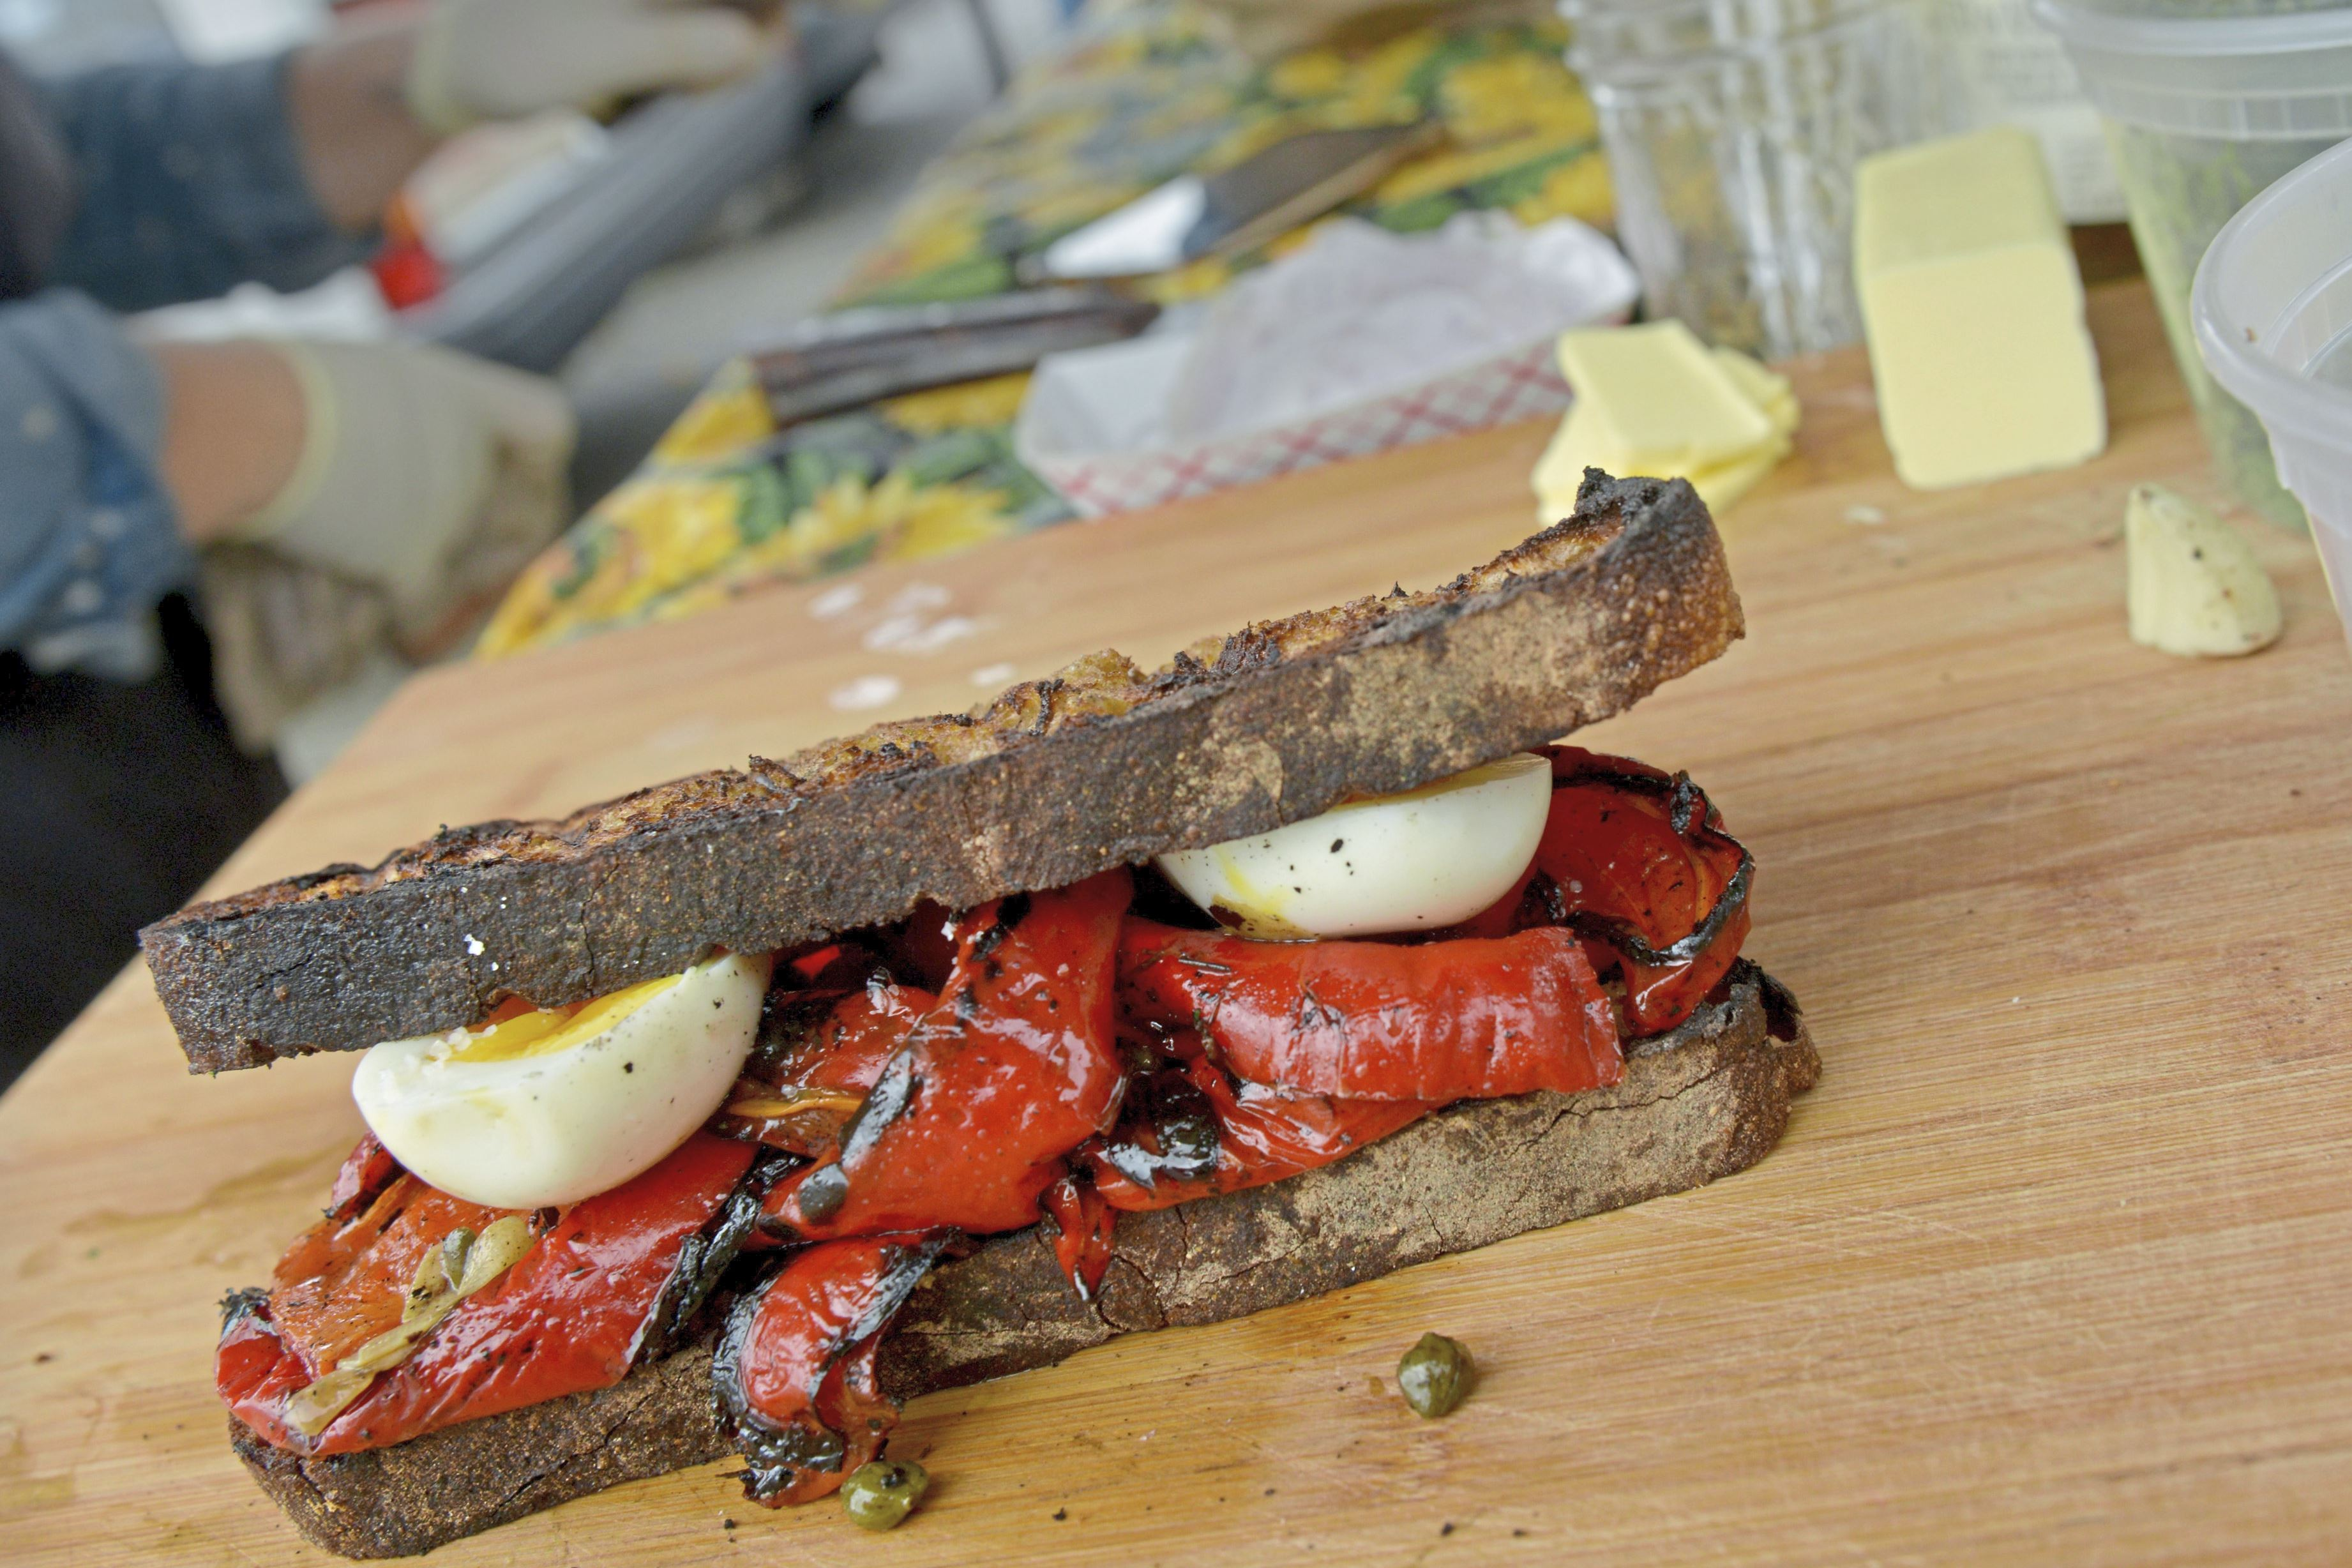 20170902ppFarmersMkt7FOOD-3 A roasted pepper and egg sandwich on toast prepared by Becca Hegarty, with Bitter Ends Garden & Luncheonette in Verona.